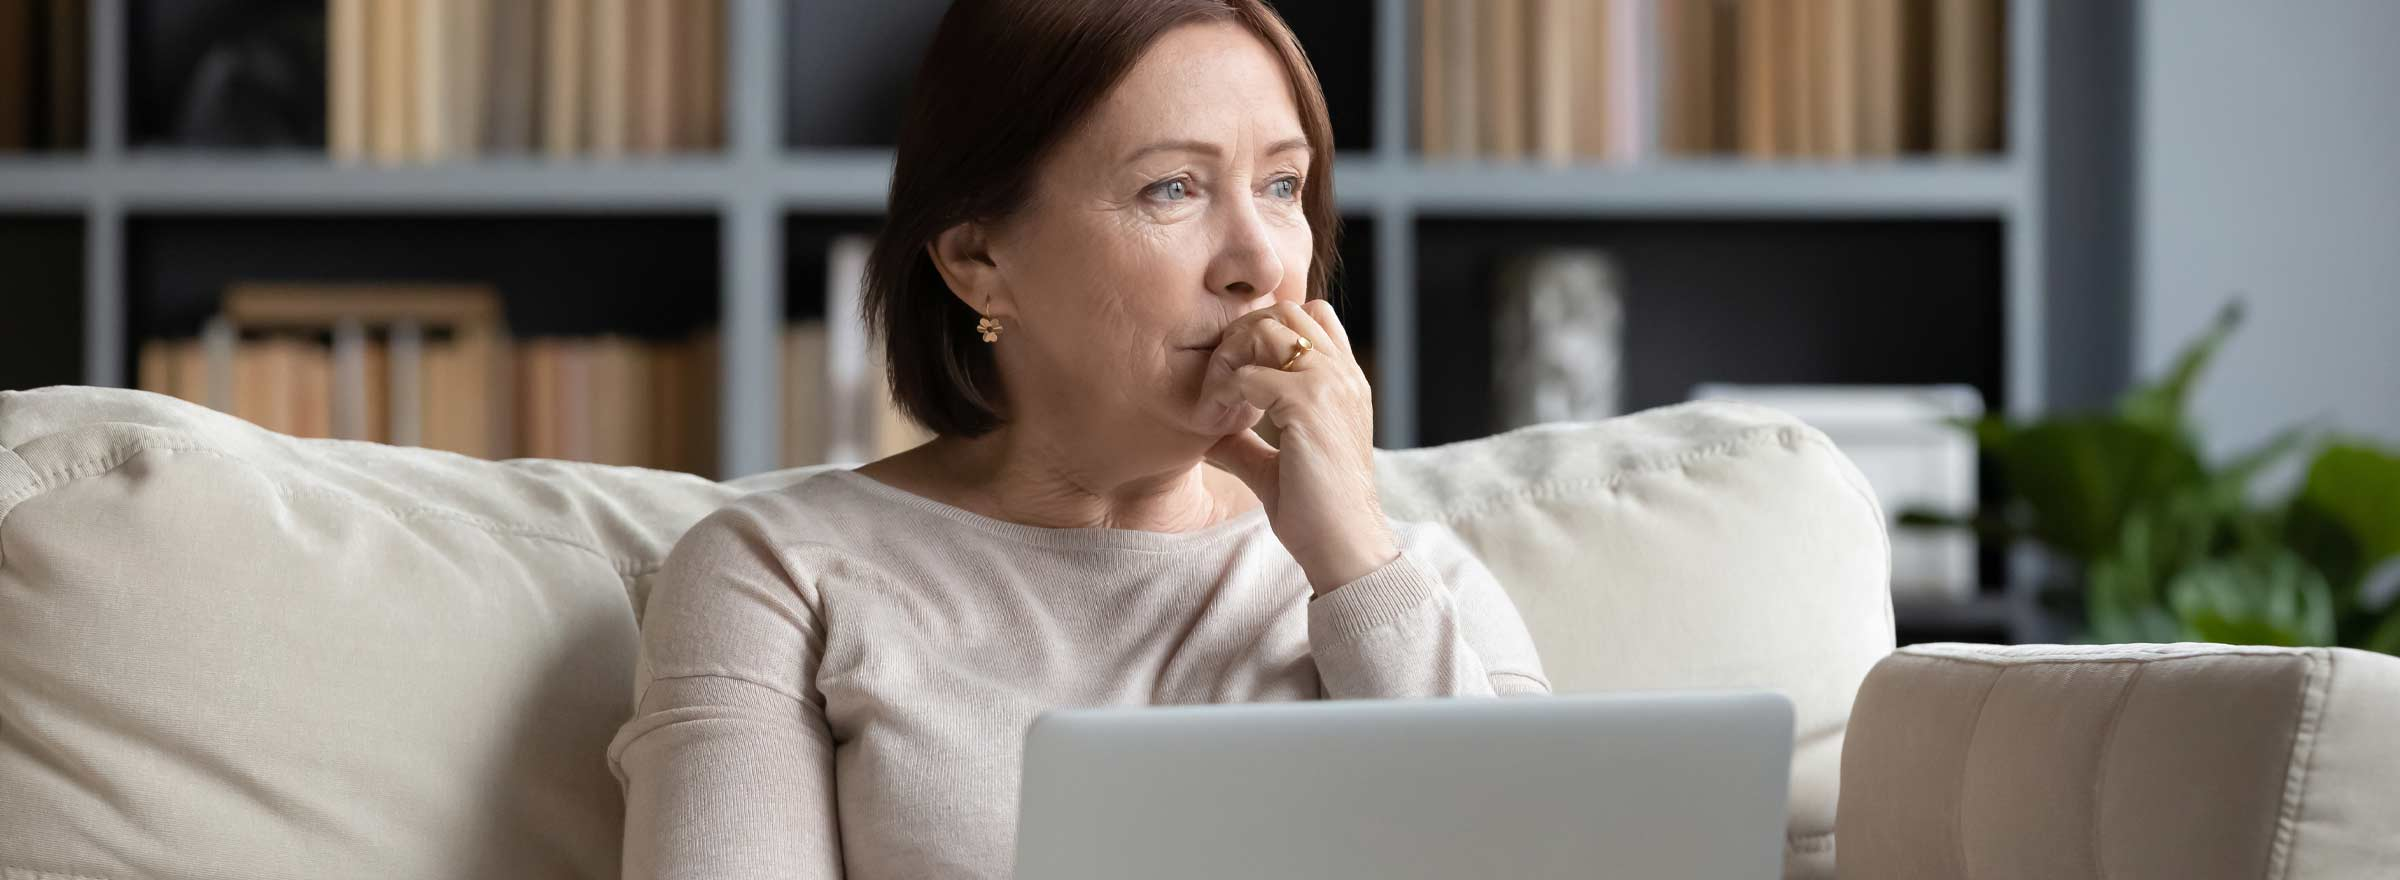 woman on a sofa holding a laptop and gazing into the distance